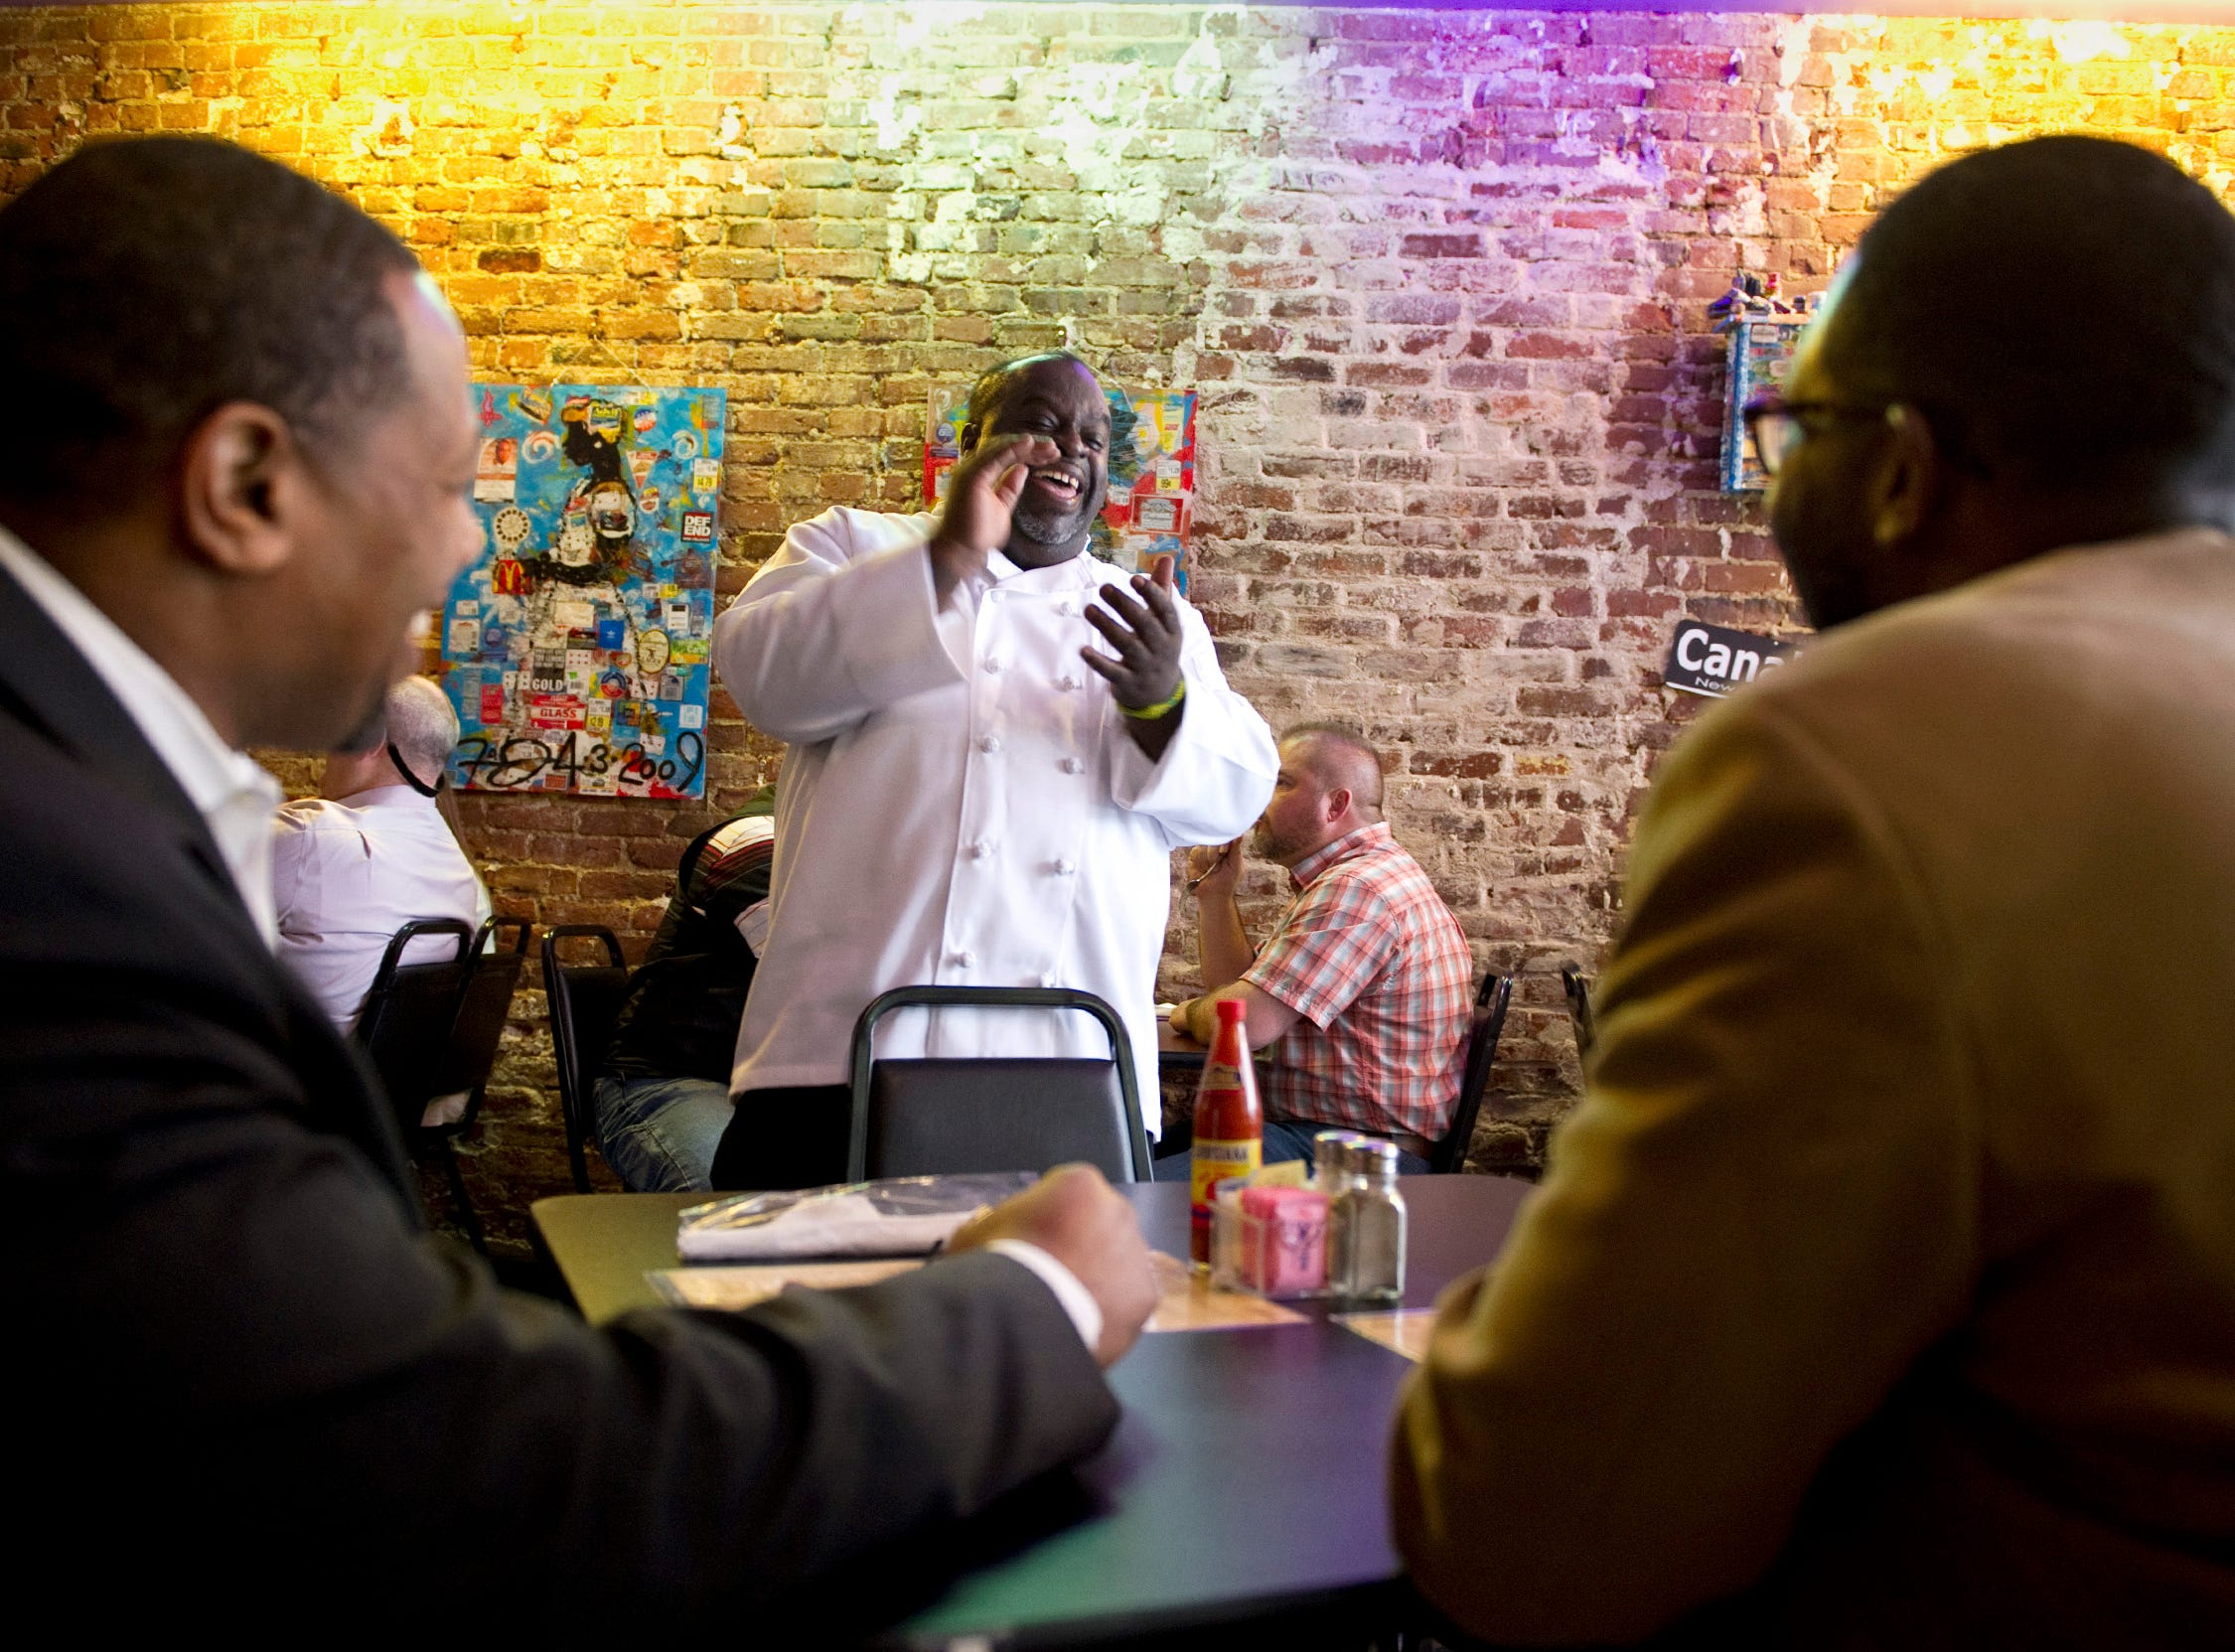 Feb 21, 2014 - DejaVu Chef Gary Williams jokes with customers Christopher Henry (left) and Darrell Pruitte during lunch at his restaurant's downtown location on South Main St.